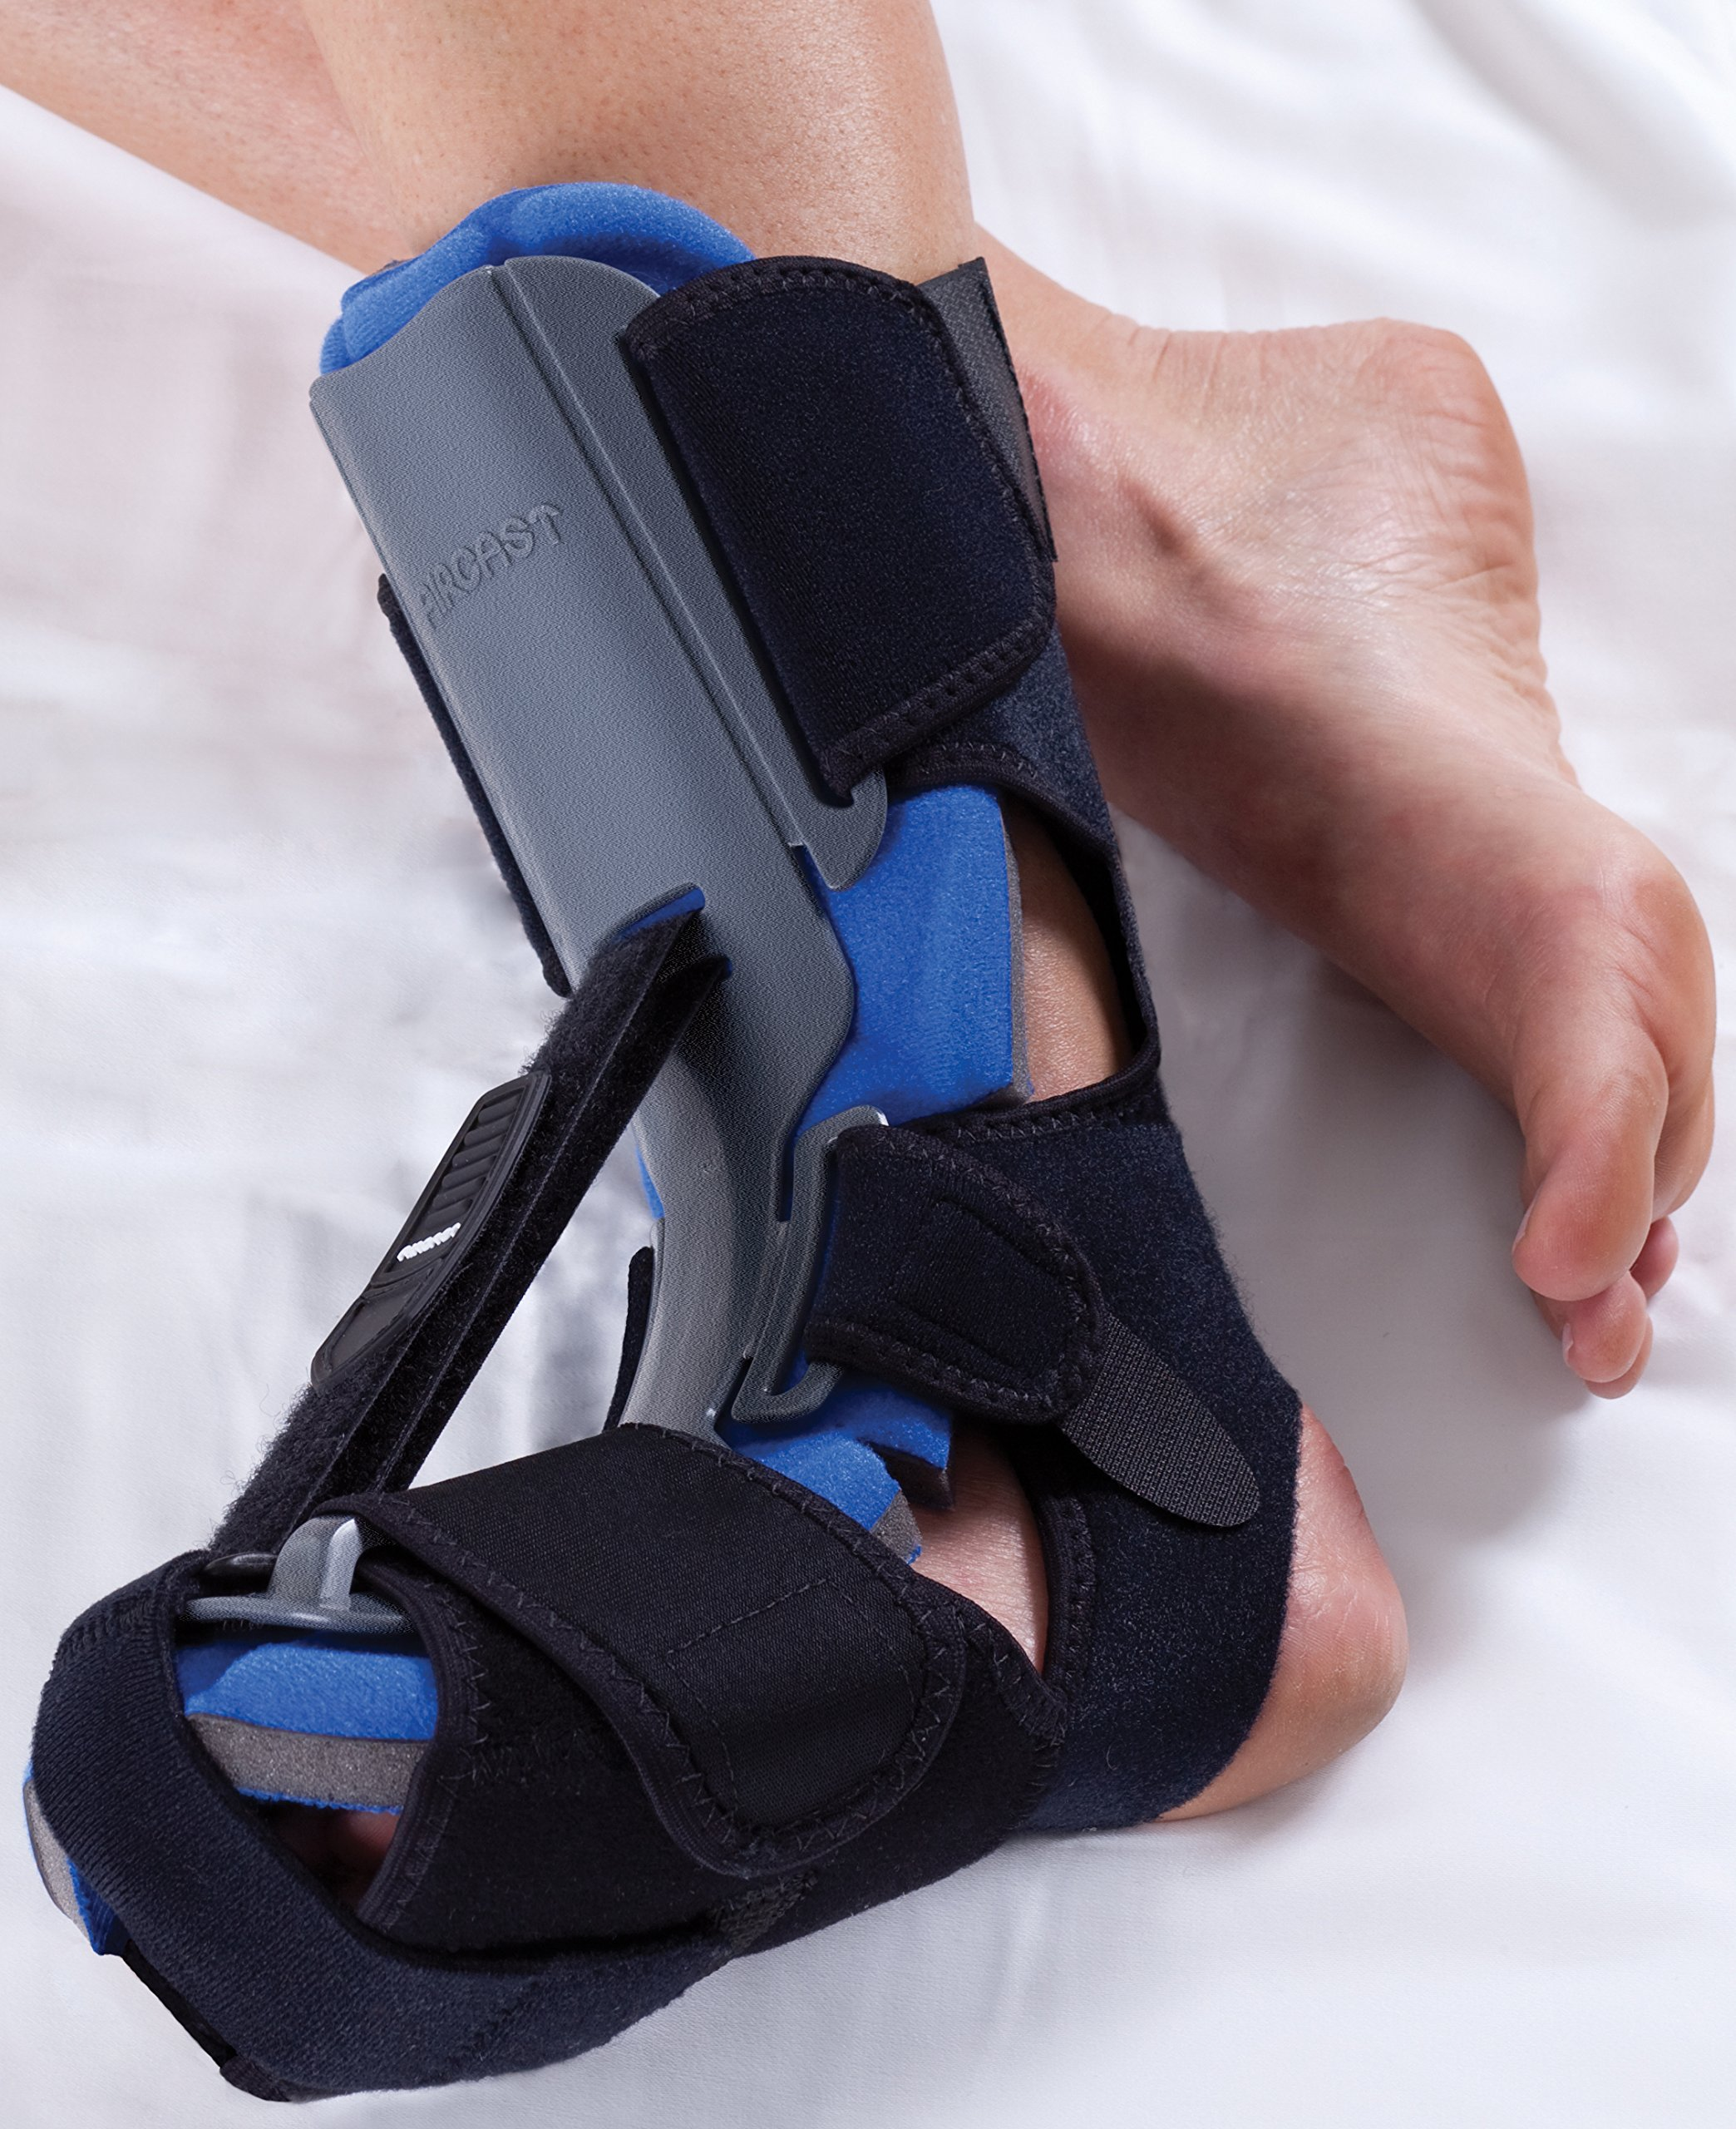 Aircast AirHeel Ankle Support Brace and Dorsal Night Splint (DNS) Care Kit, Medium by Aircast (Image #7)